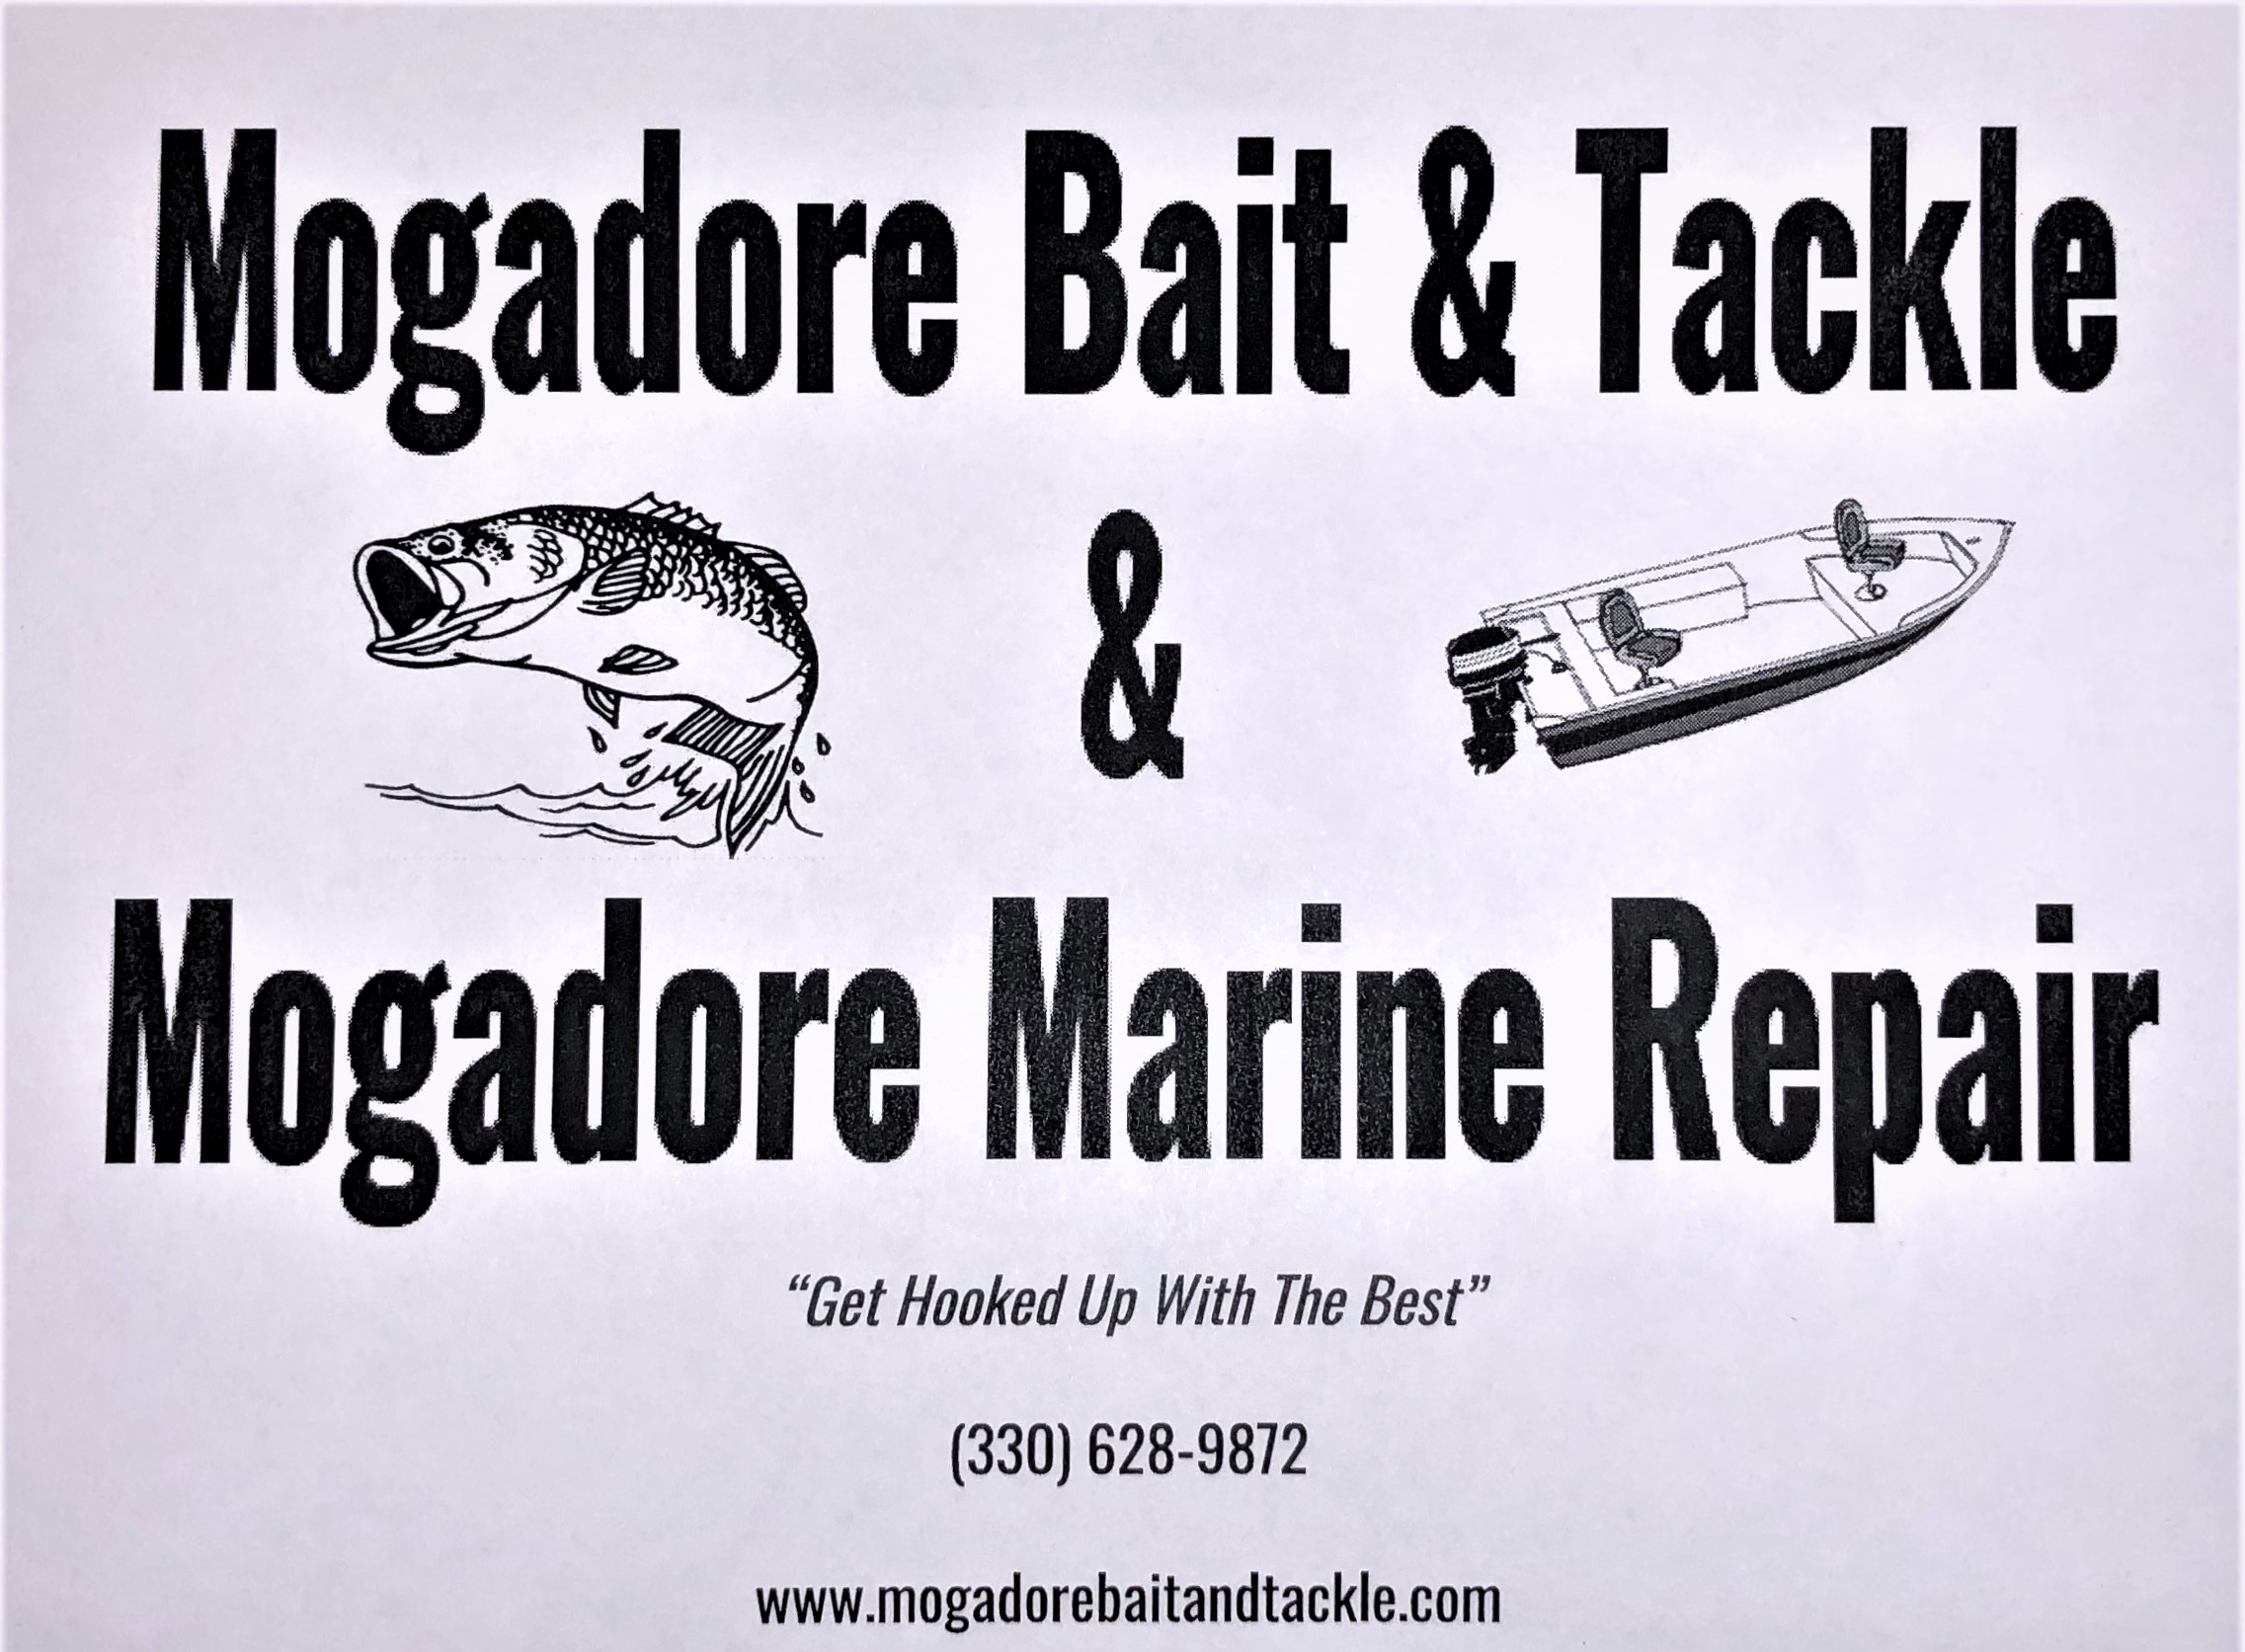 Mogadore Bait & Tackle & Marine Repair